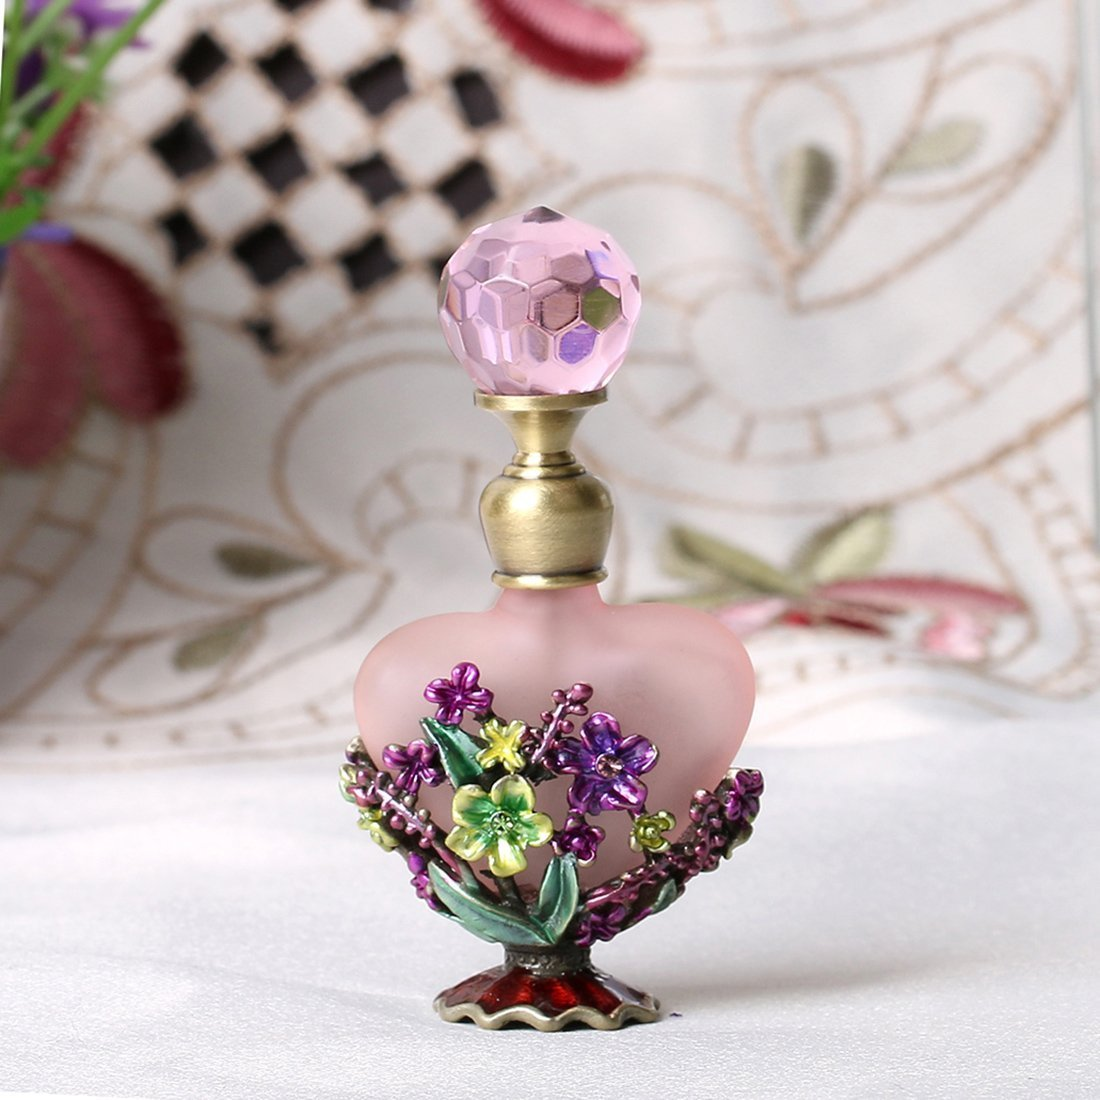 H&D Vintage Magical Violet Refillable Empty Crystal Perfume Bottle Handmade Home Decor Lady Wedding Gift